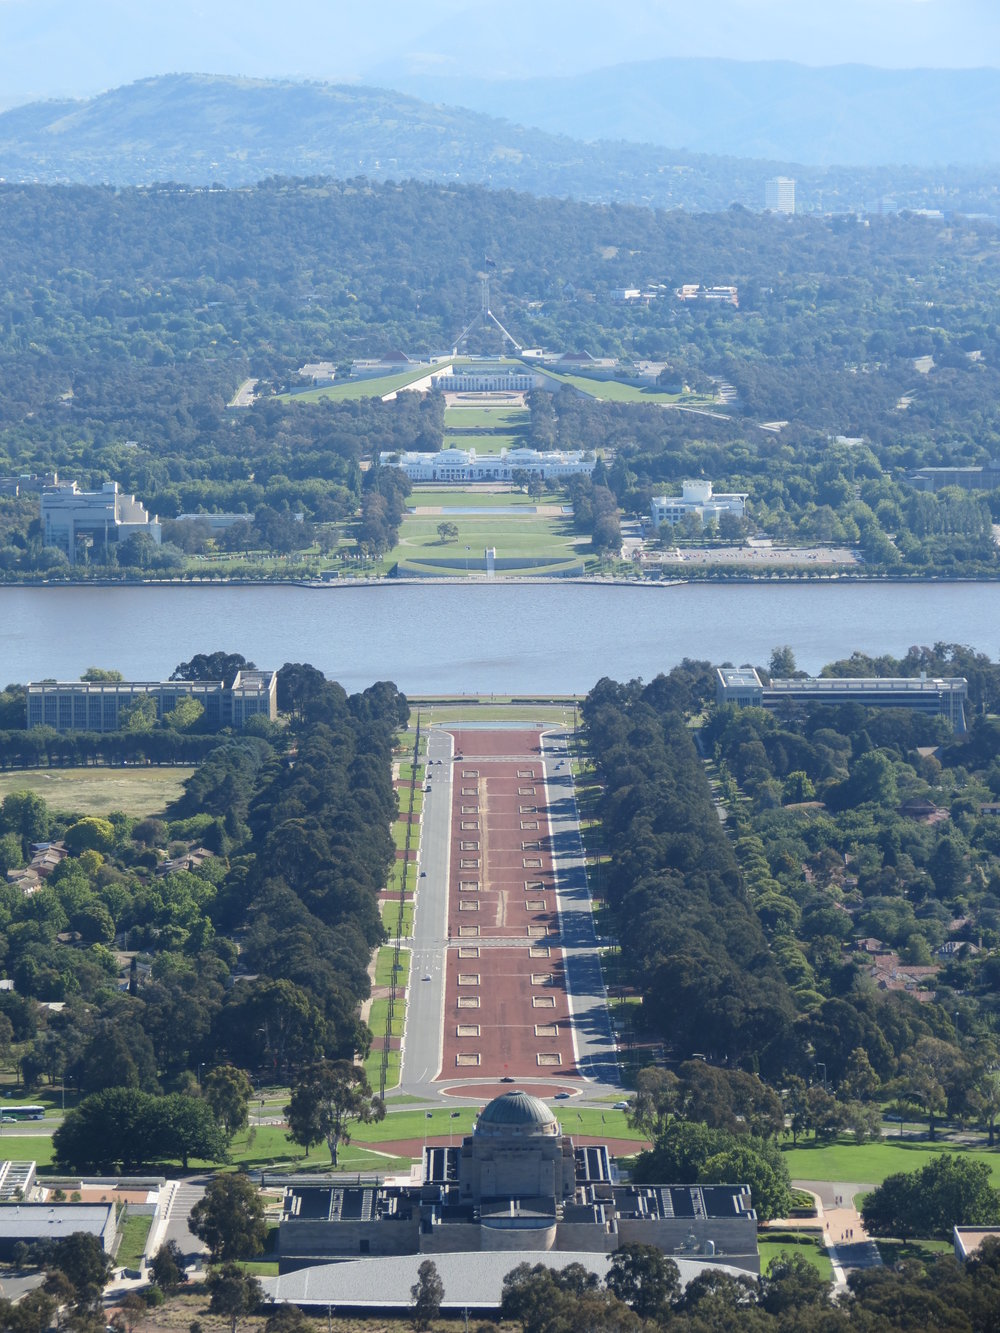 View of Australian War Memorial and Parliament from Mount Ainslie in Canberra, ACT